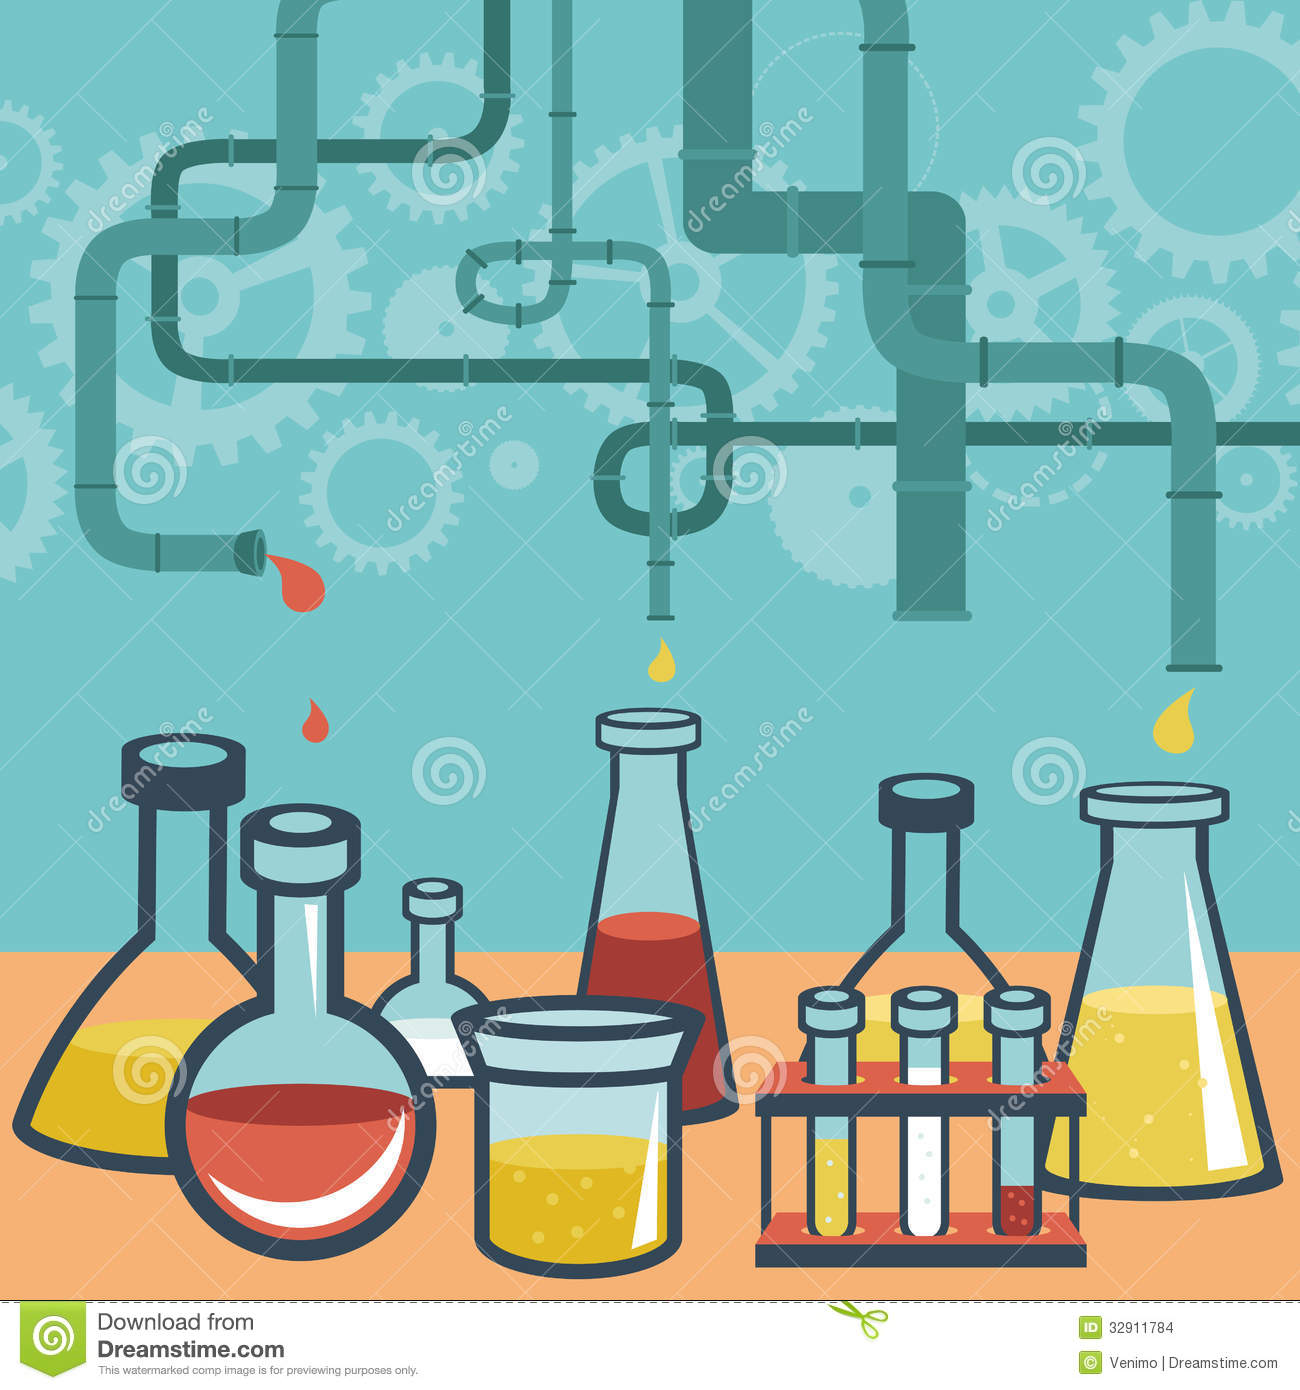 Chemistry Science Clipart Wallpapers Vector concept chemistry and